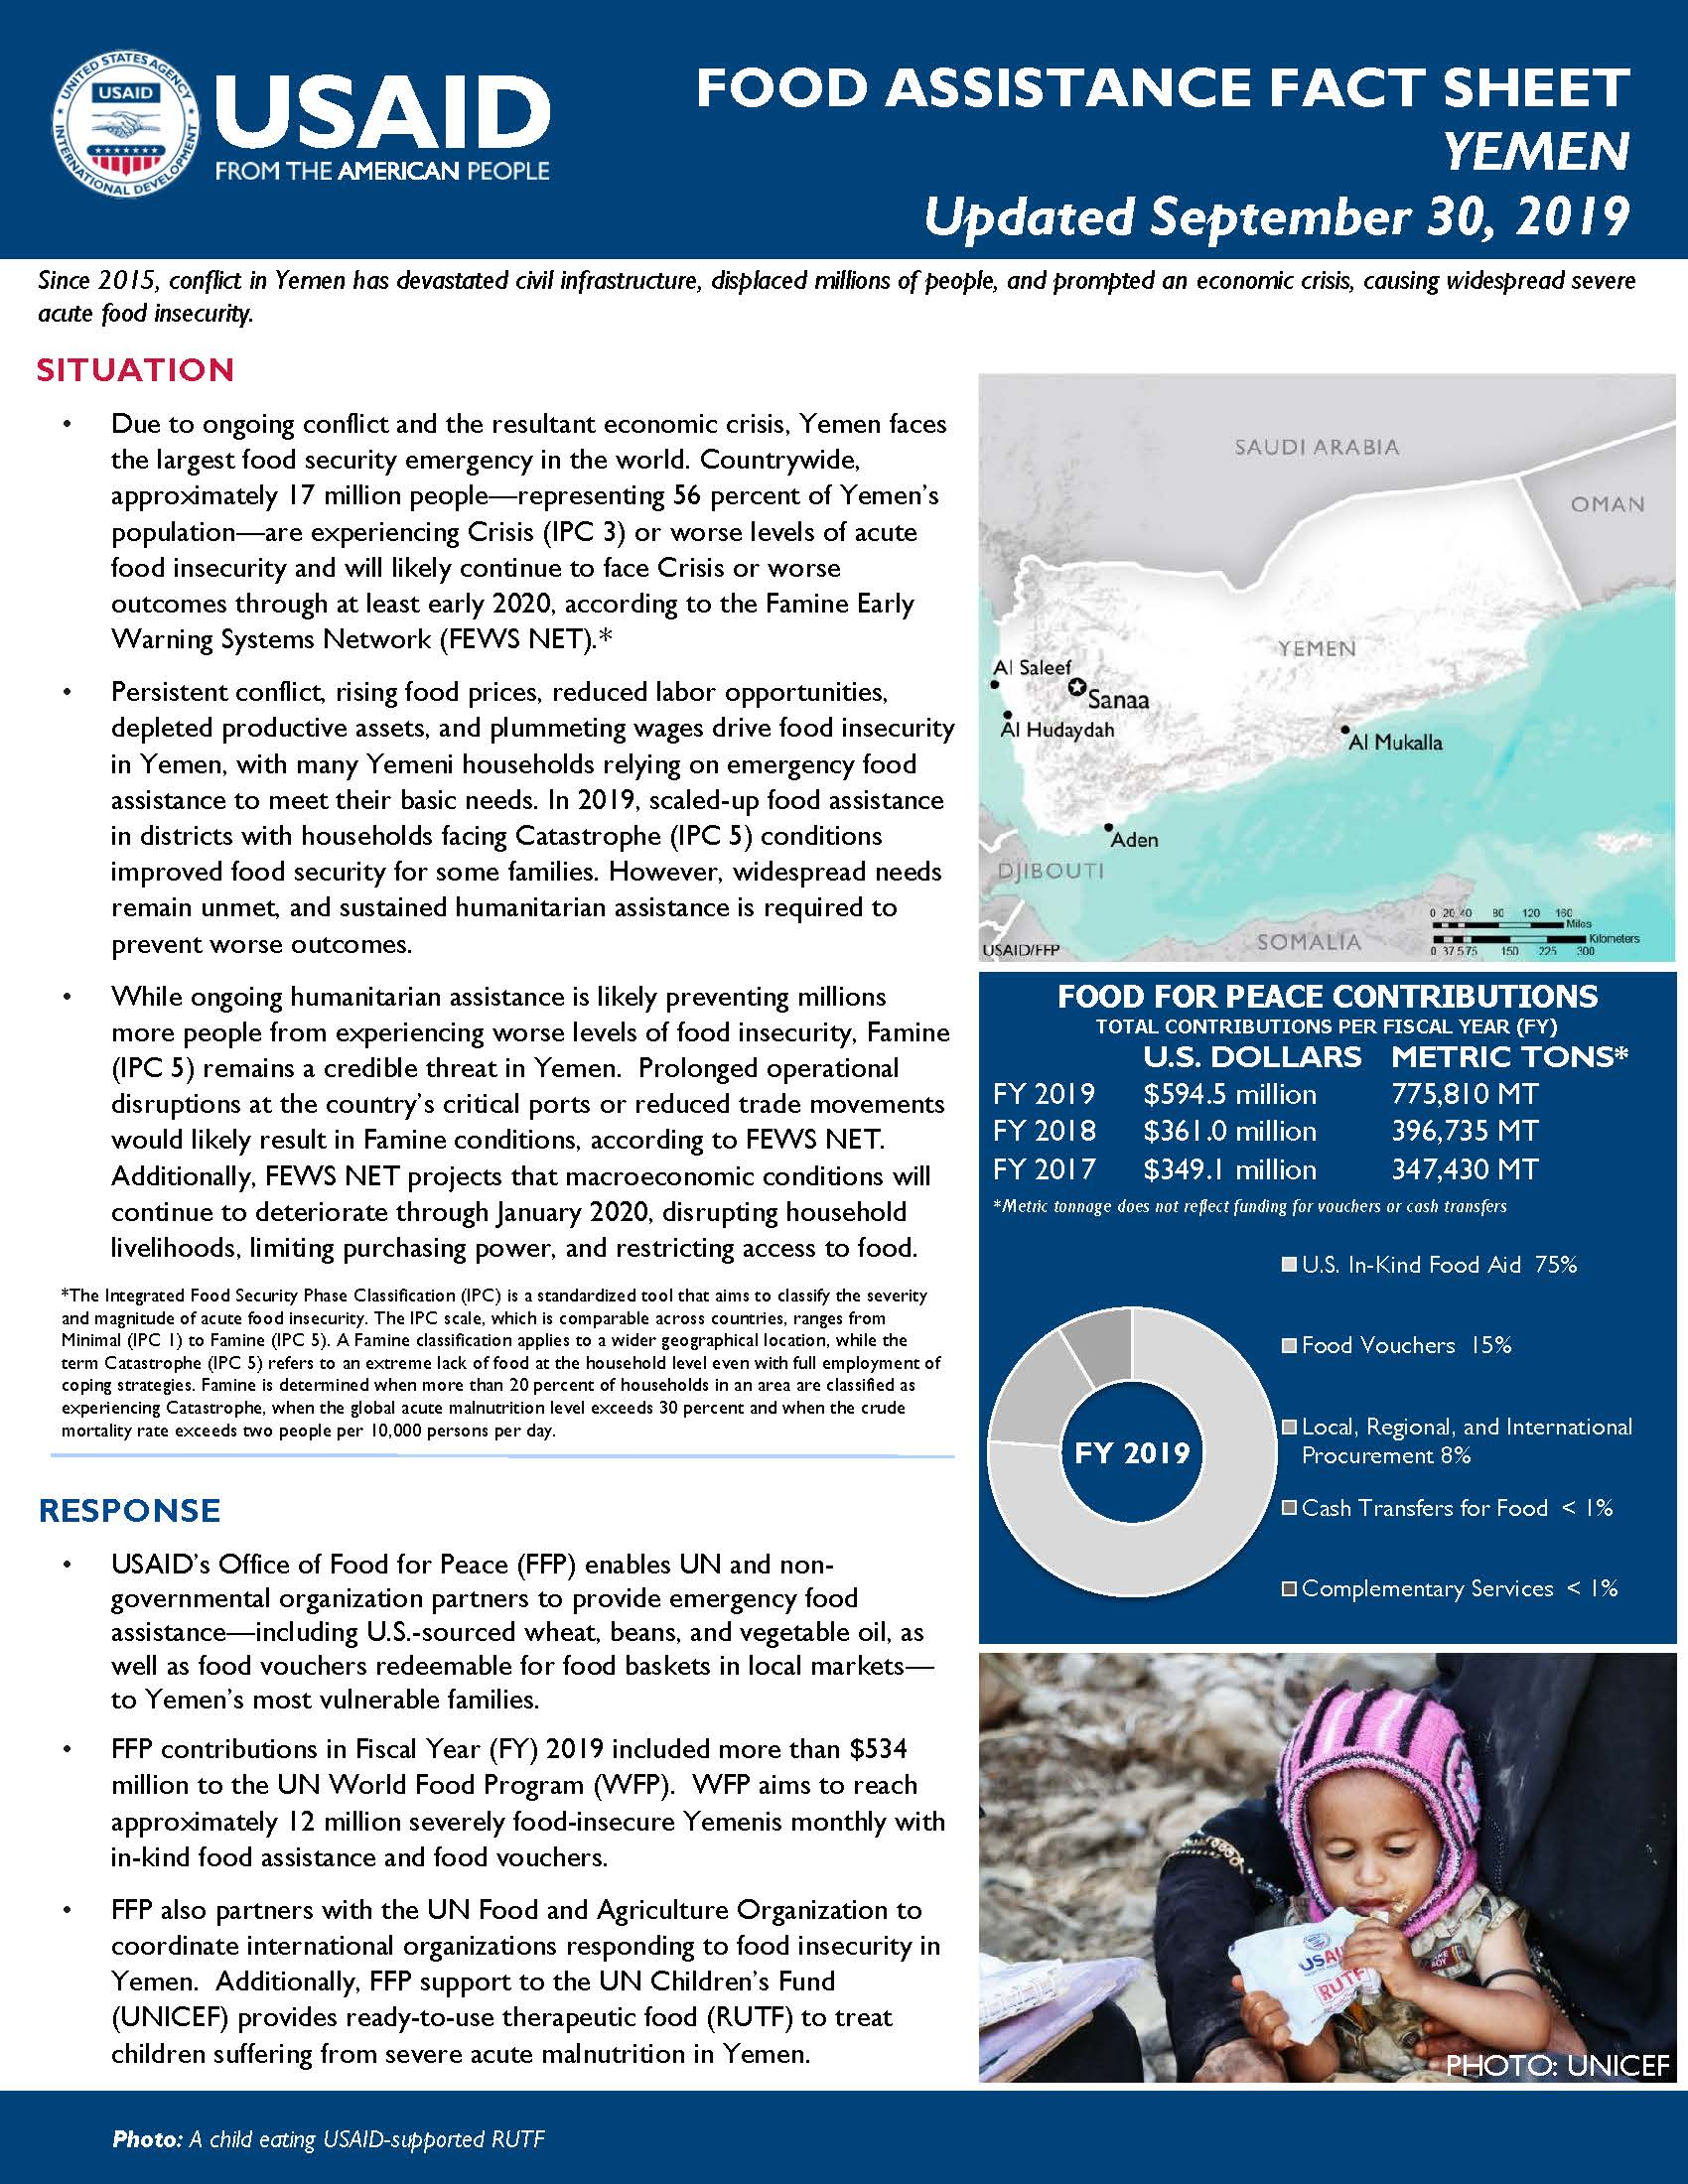 Food Assistance Fact Sheet - Yemen